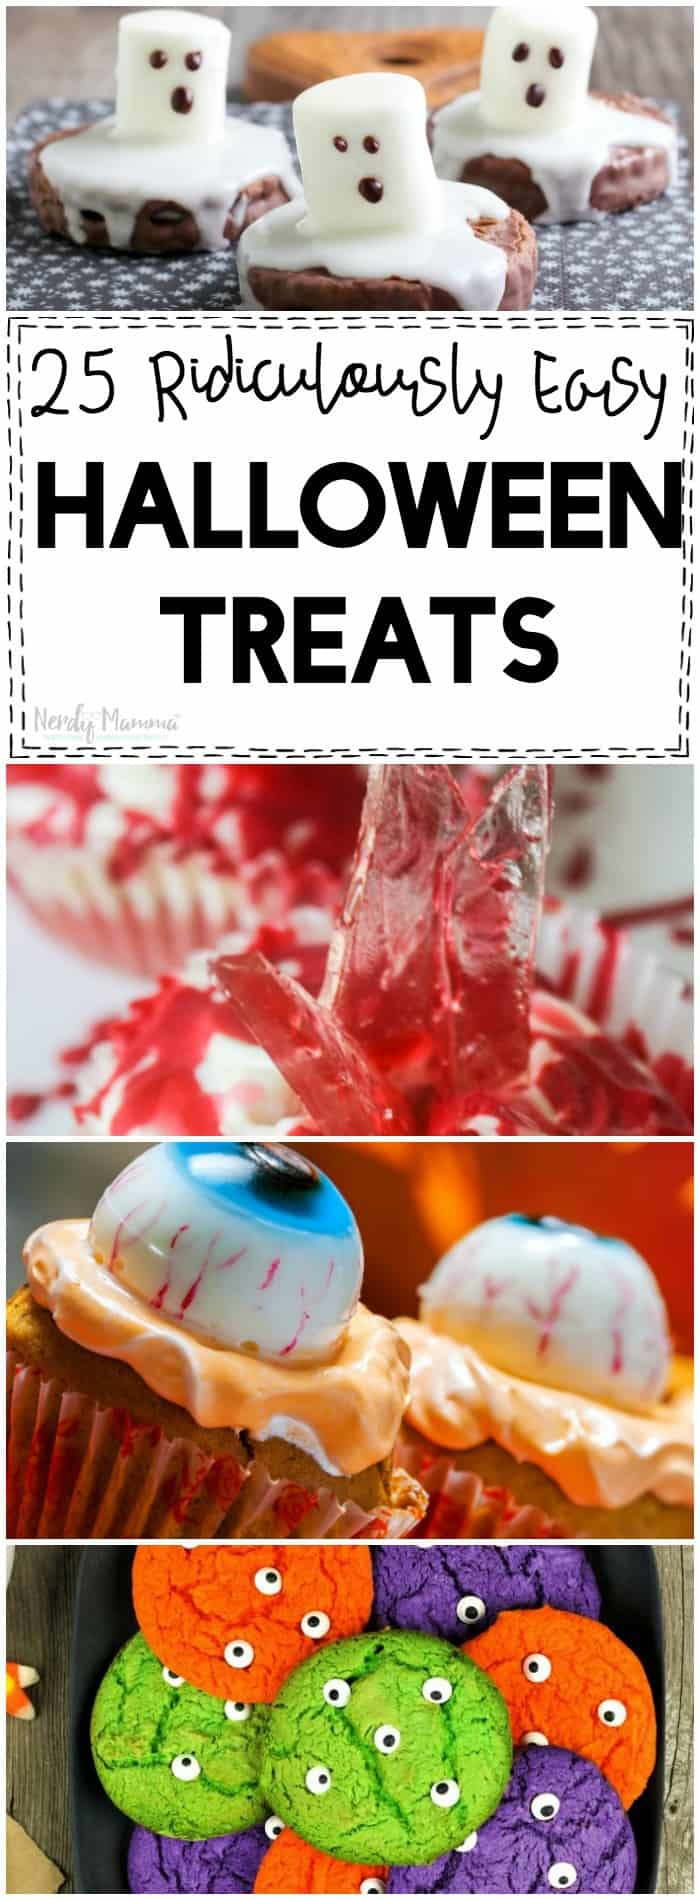 OMG These Halloween treats are easy, adorable, and fun!